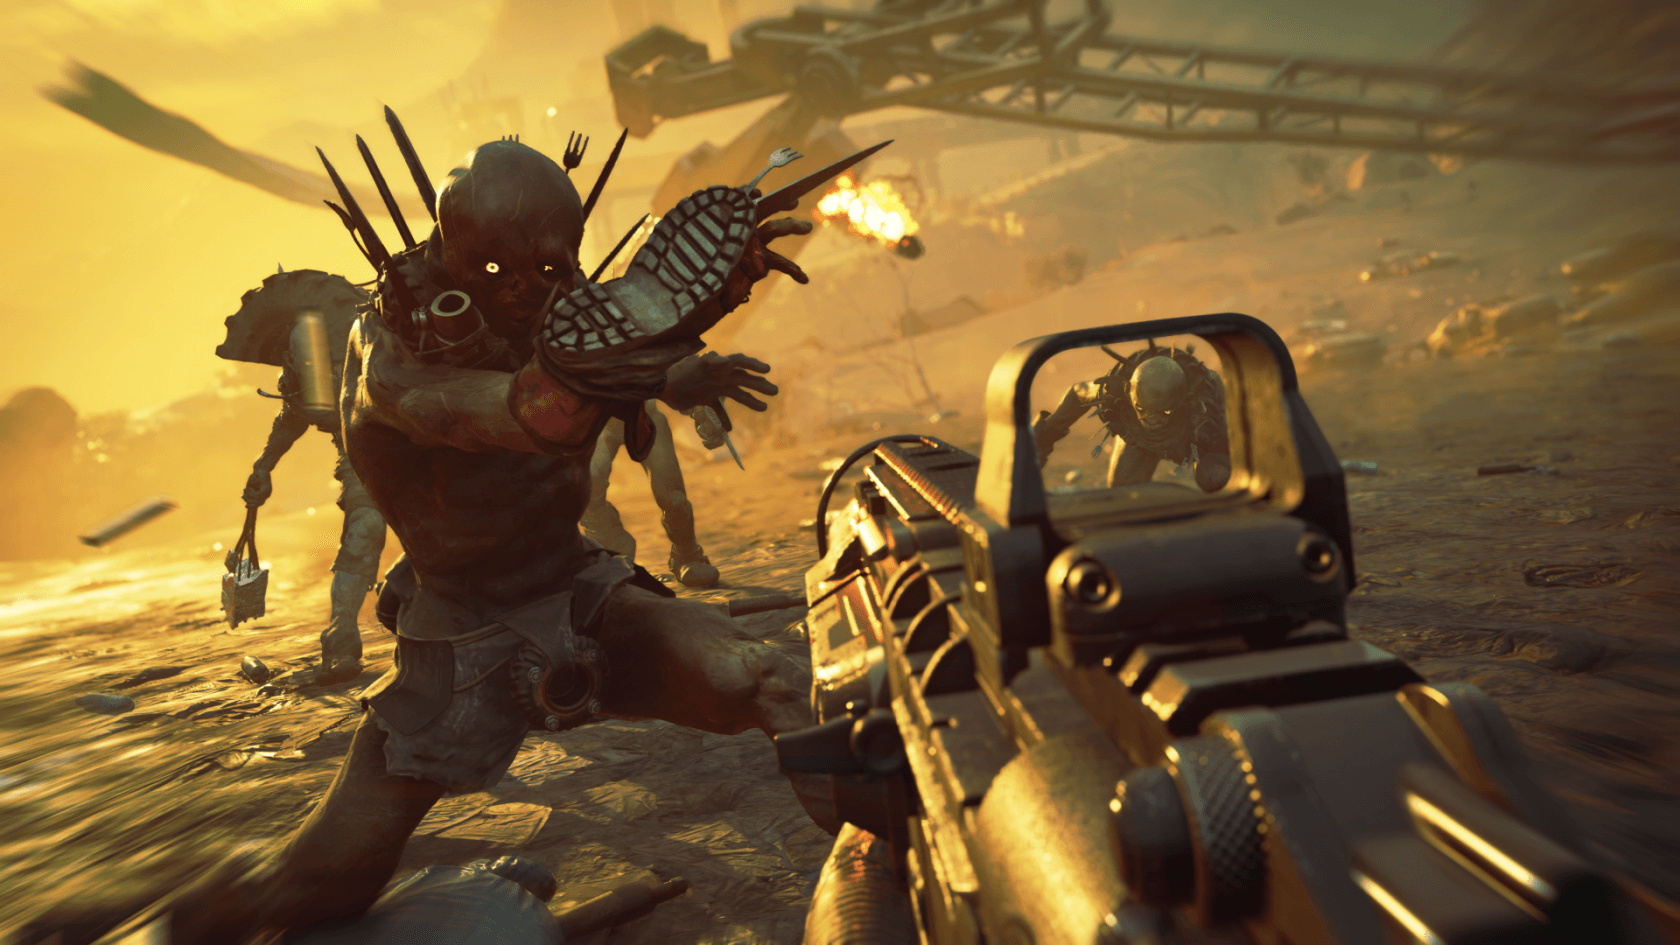 Bethesda might not sell Rage 2 on Steam - TechSpot